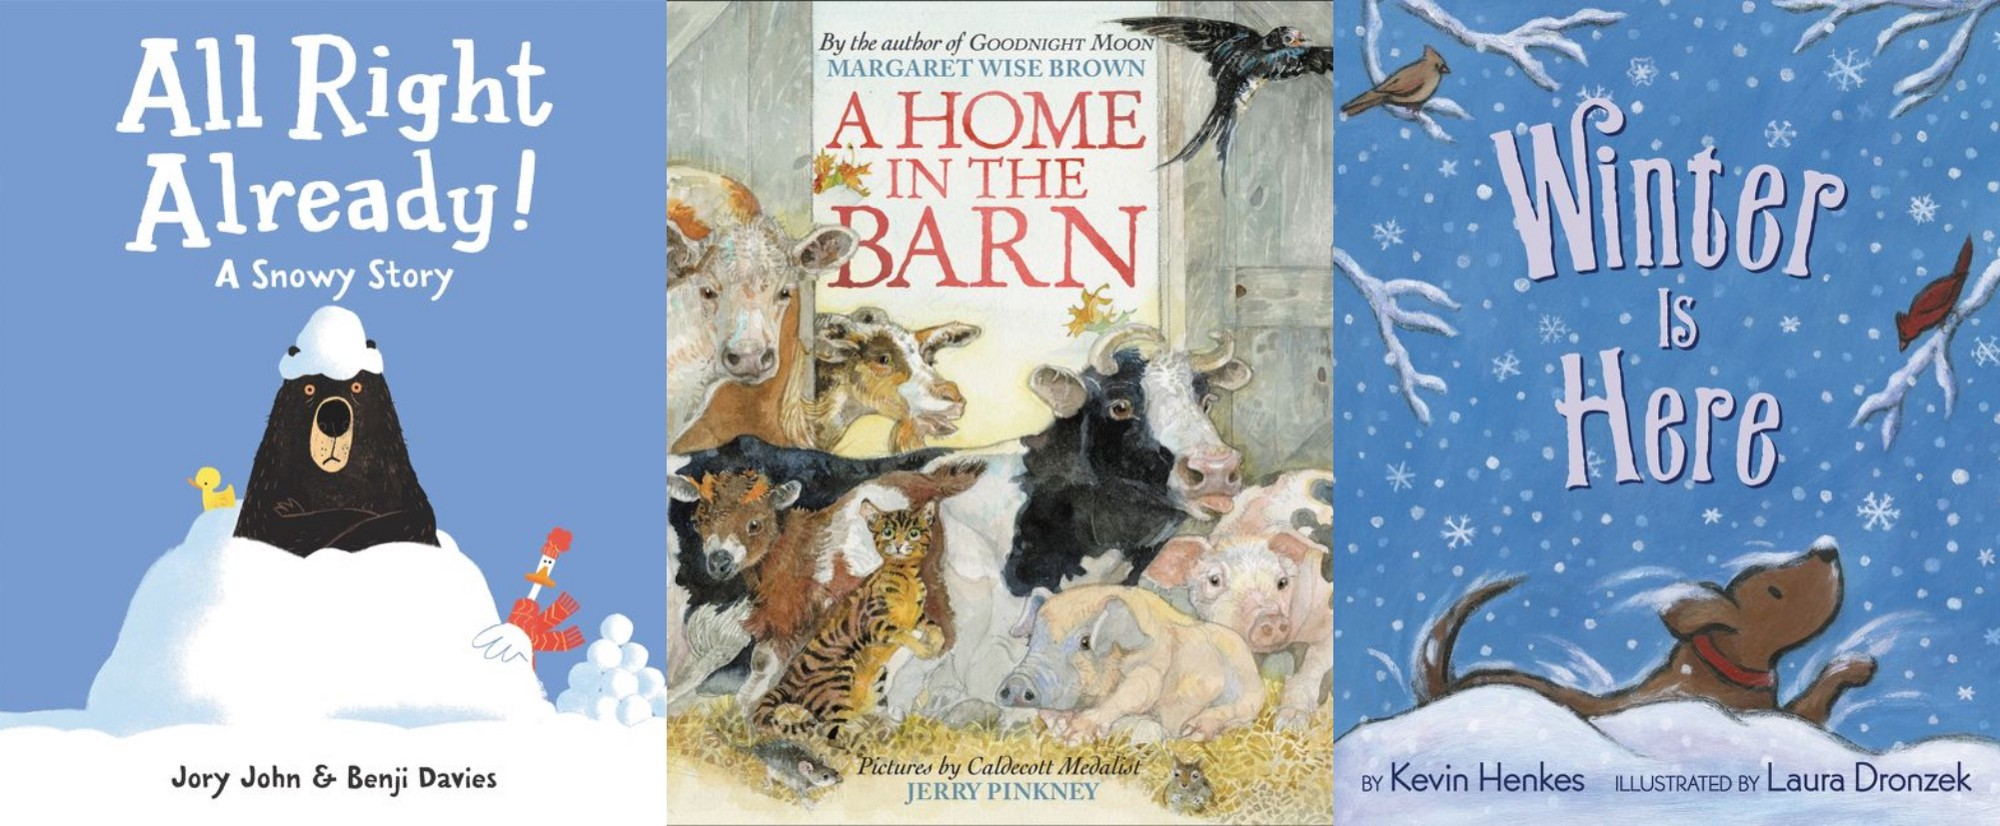 The winter season is right around the corner, so it's time to snuggle up  with your little readers and enjoy a cozy bedtime story!